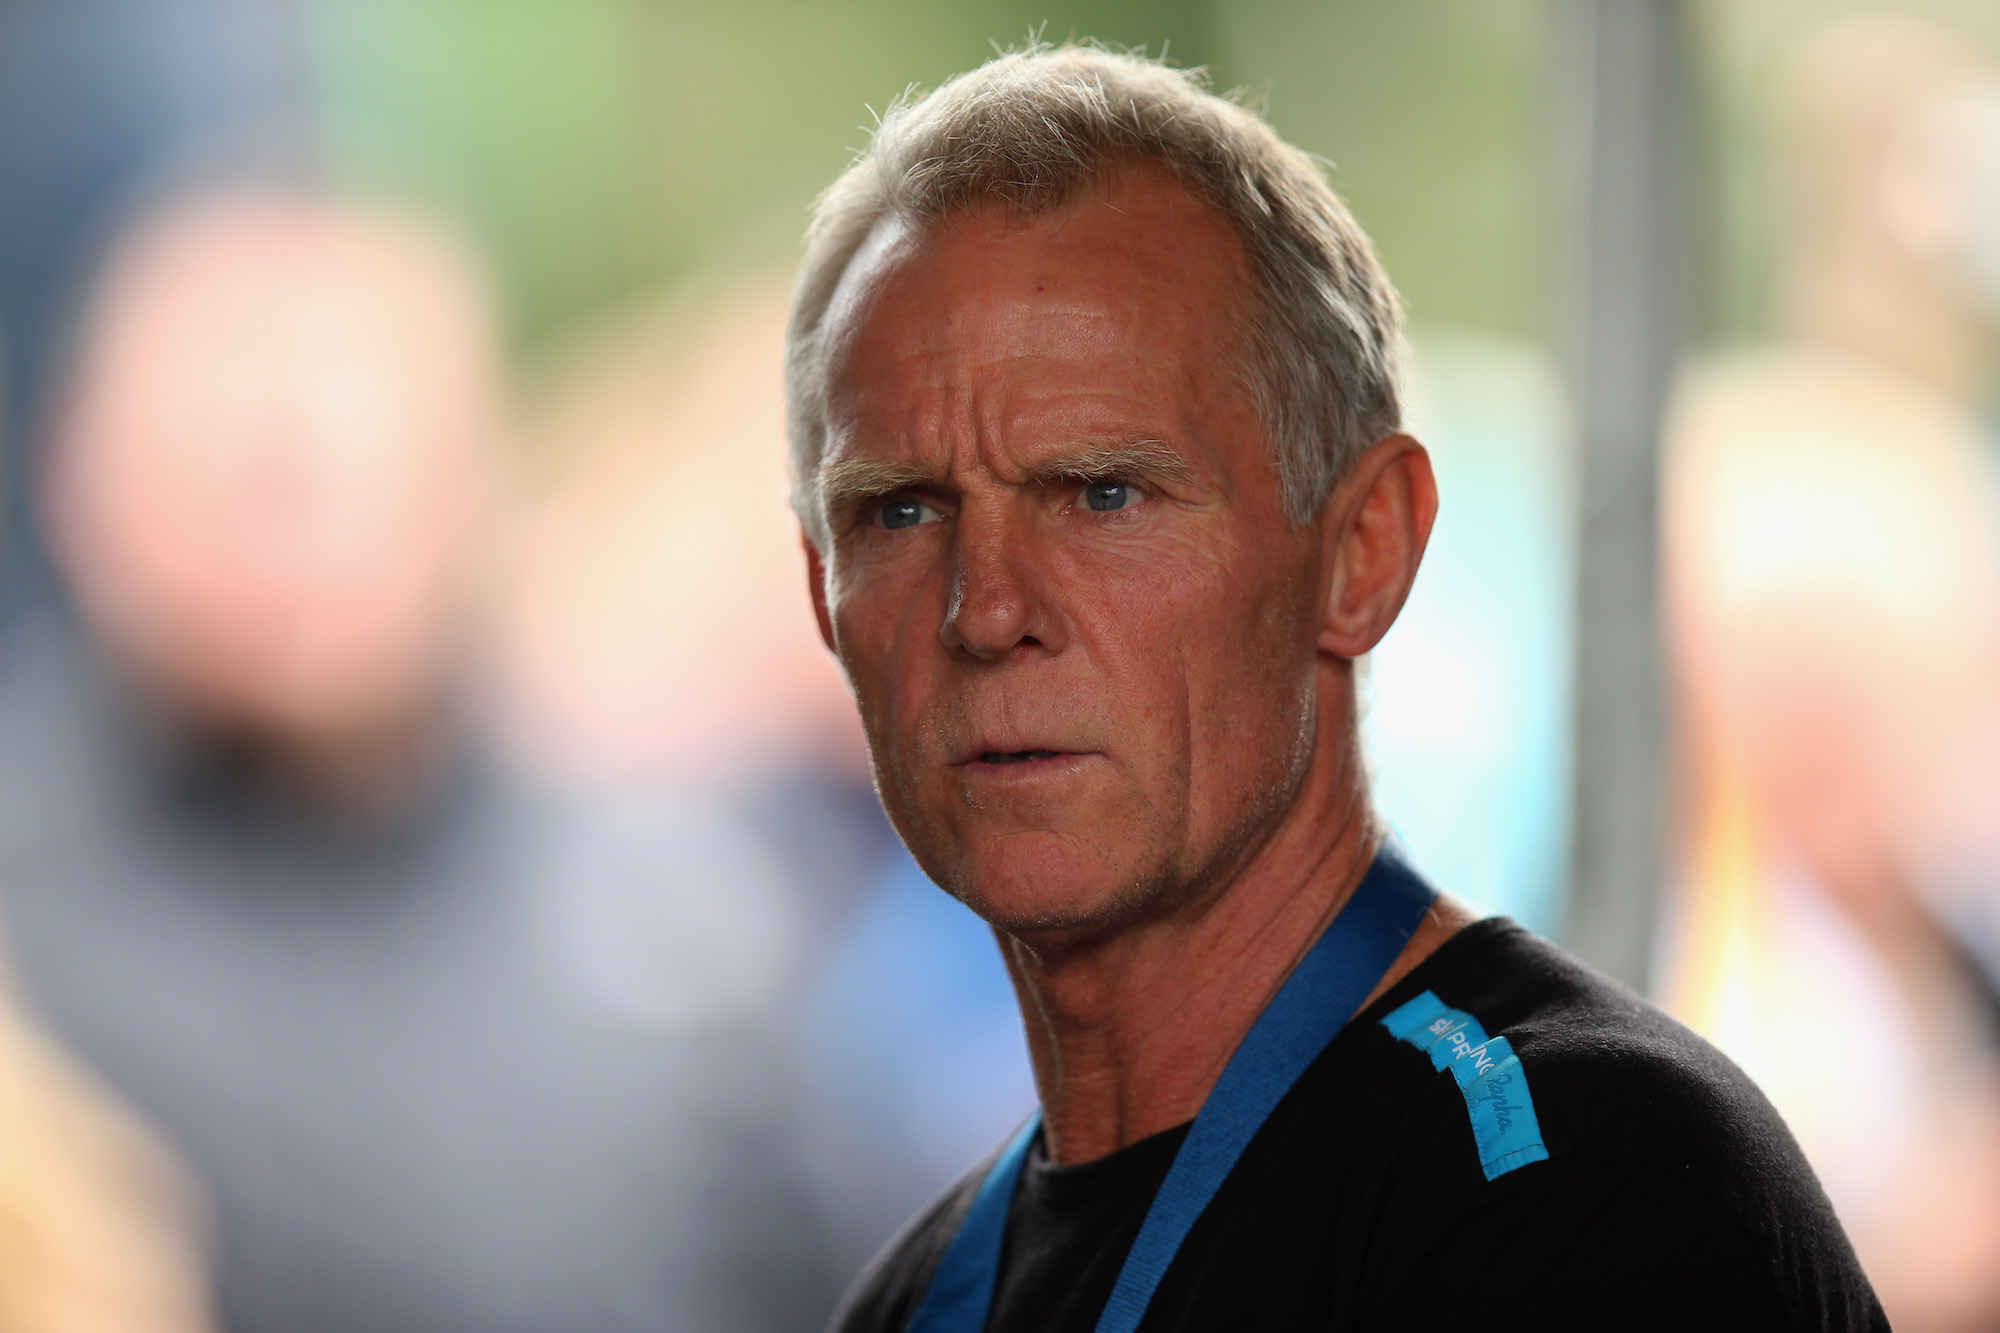 Shane Sutton faces fresh doping allegations by Dr Freeman's lawyer